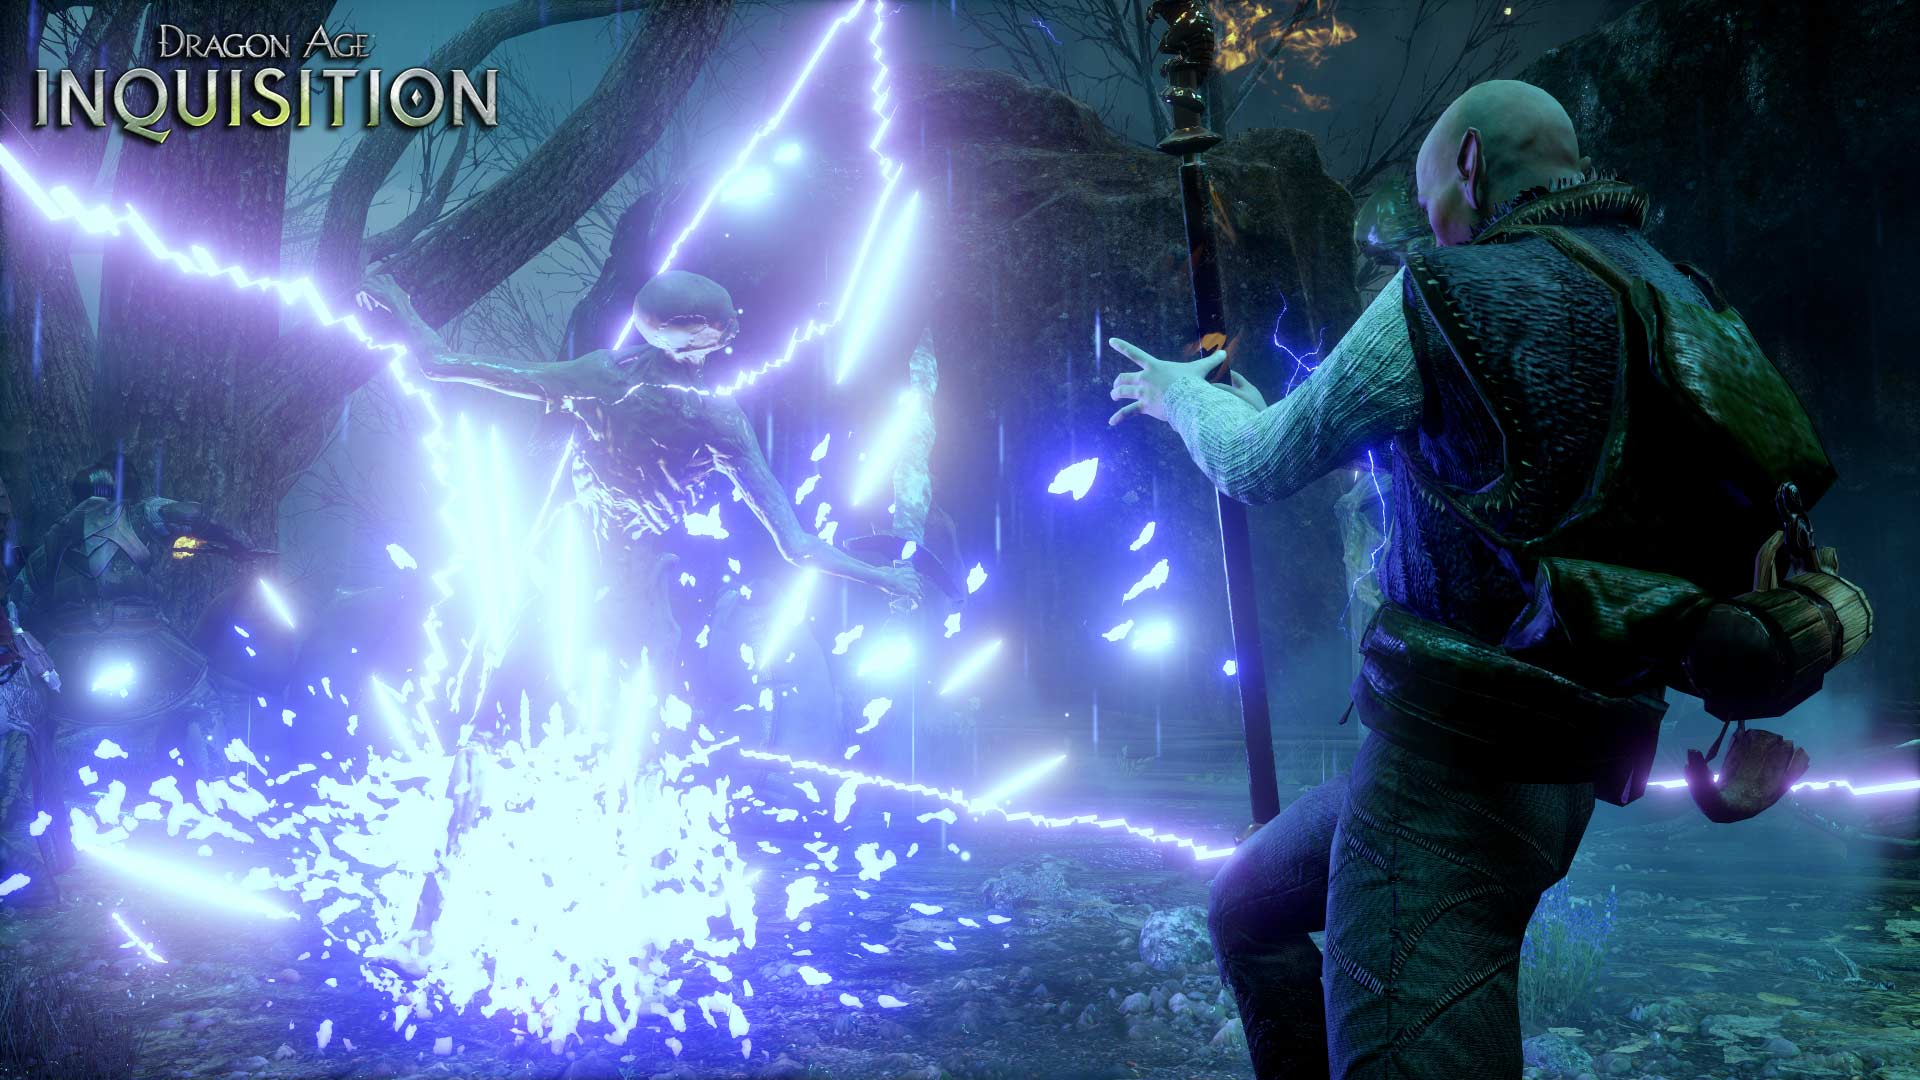 Dragon Age Inquisition Screenshots 6 Images